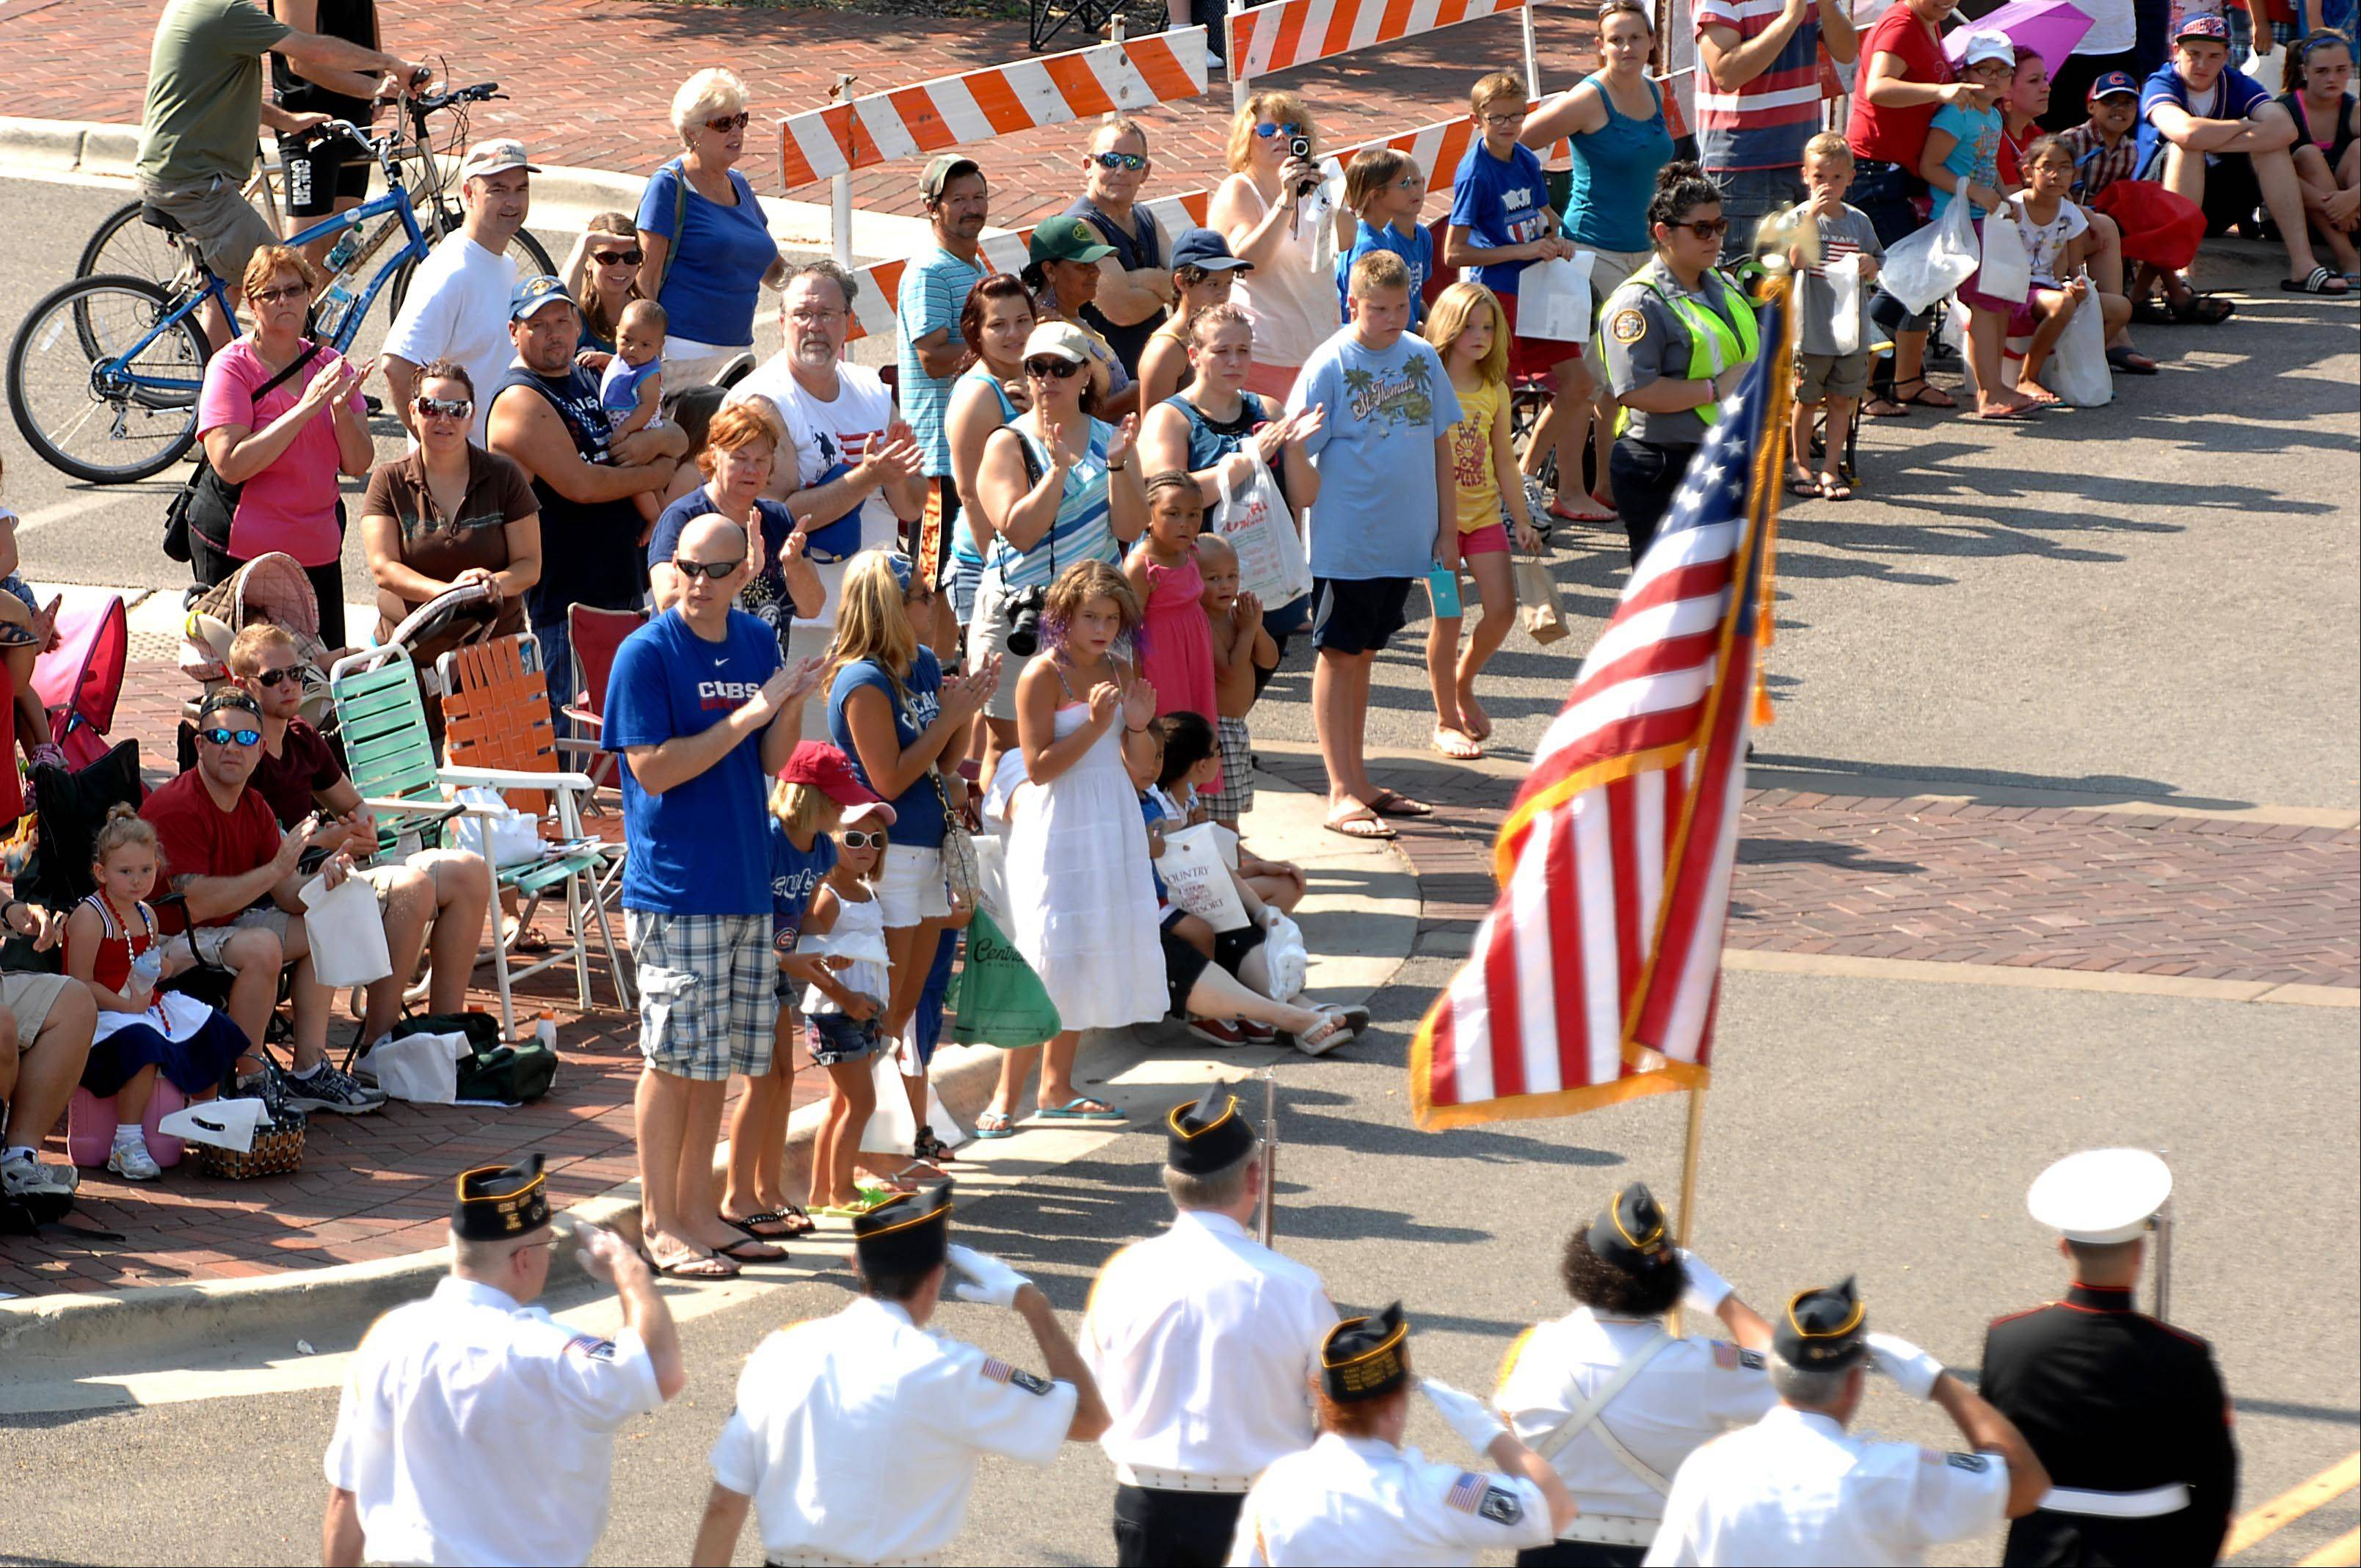 The crowd stands and applauds as the American Flag passes Wednesday at the Elgin Fourth of July parade.